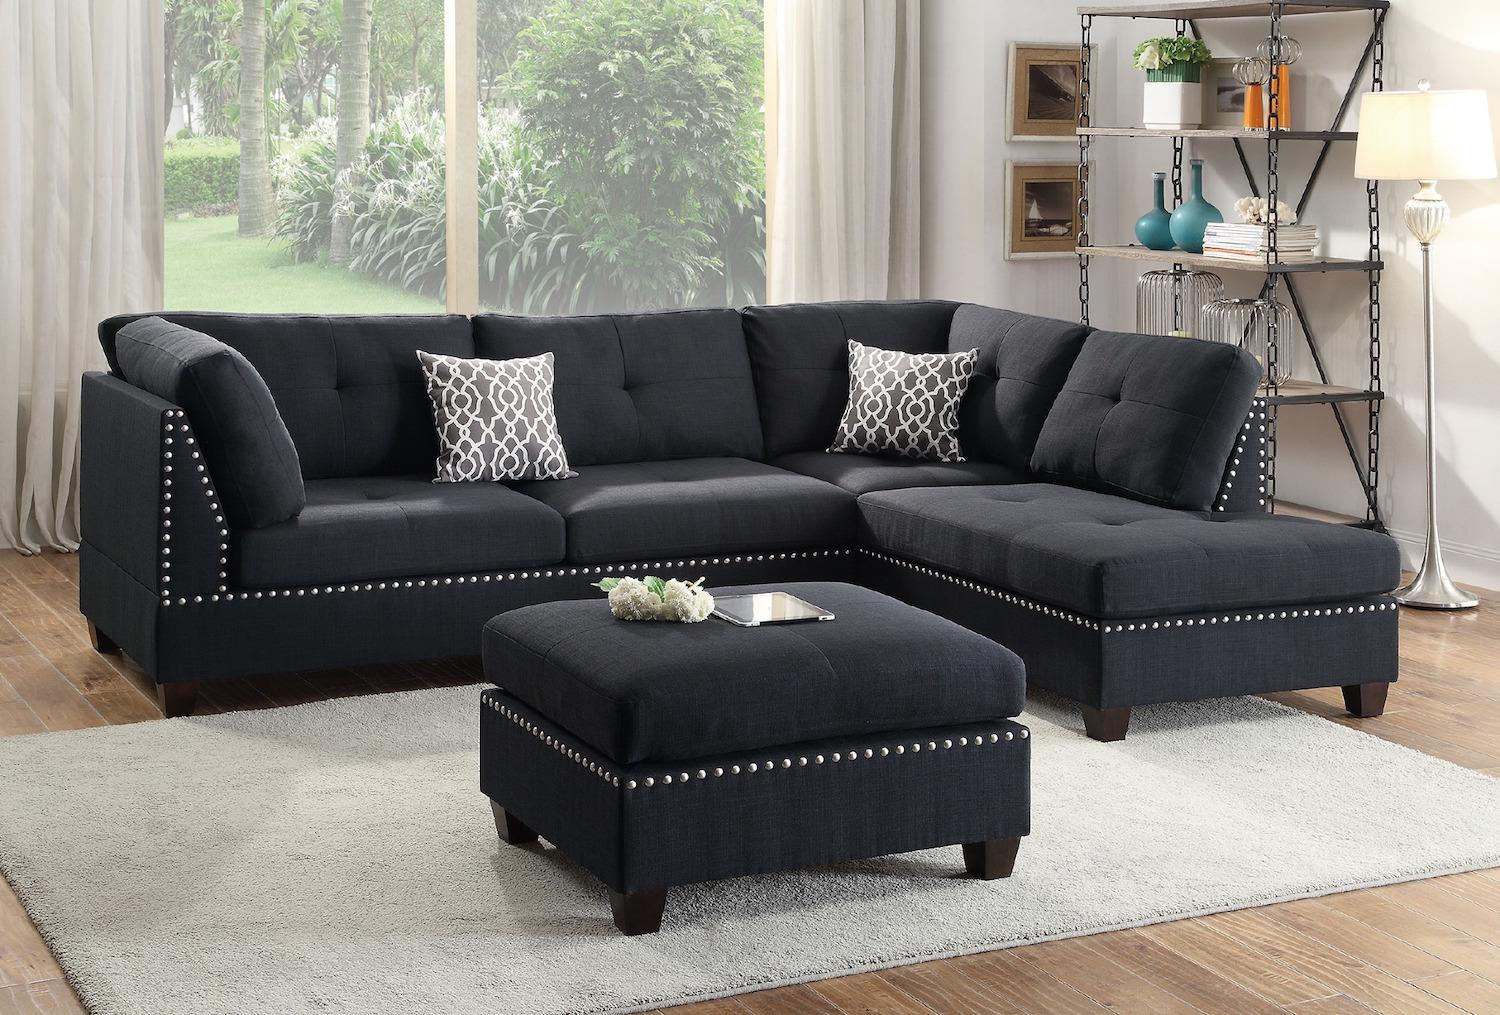 Reversible Sectional Sofa with Ottoman Set, Black